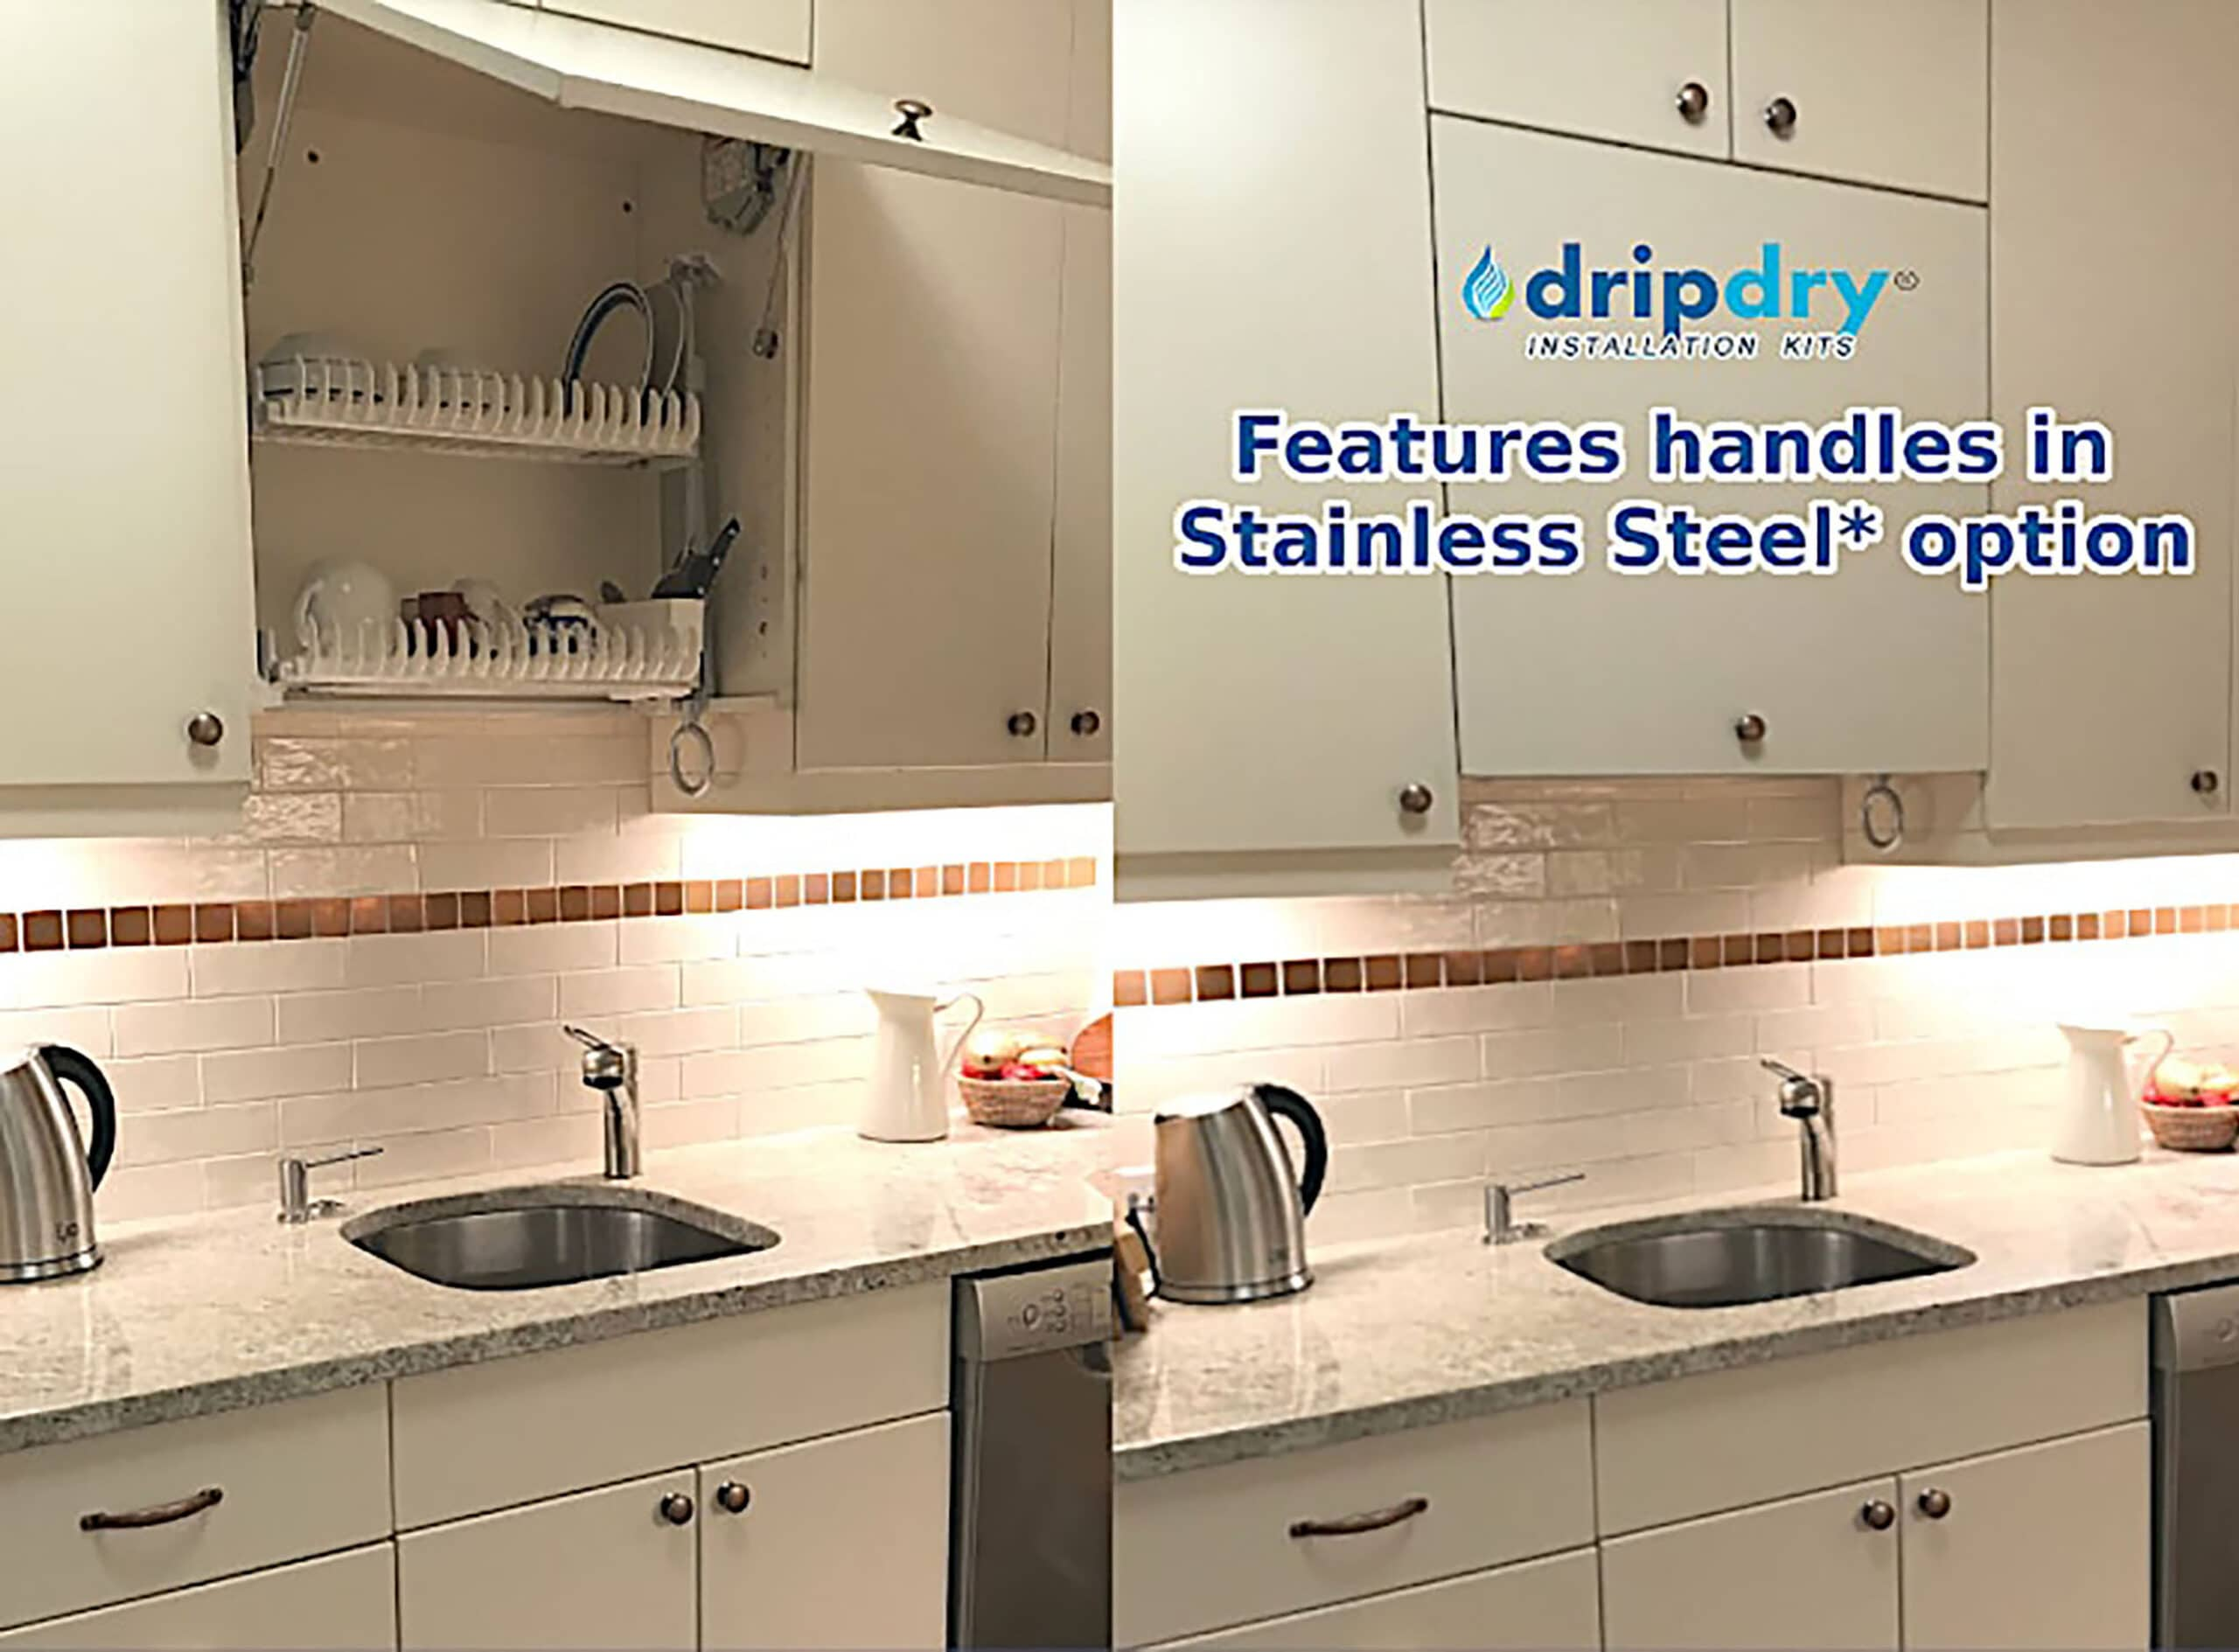 DripDry in Stainless Steel Option